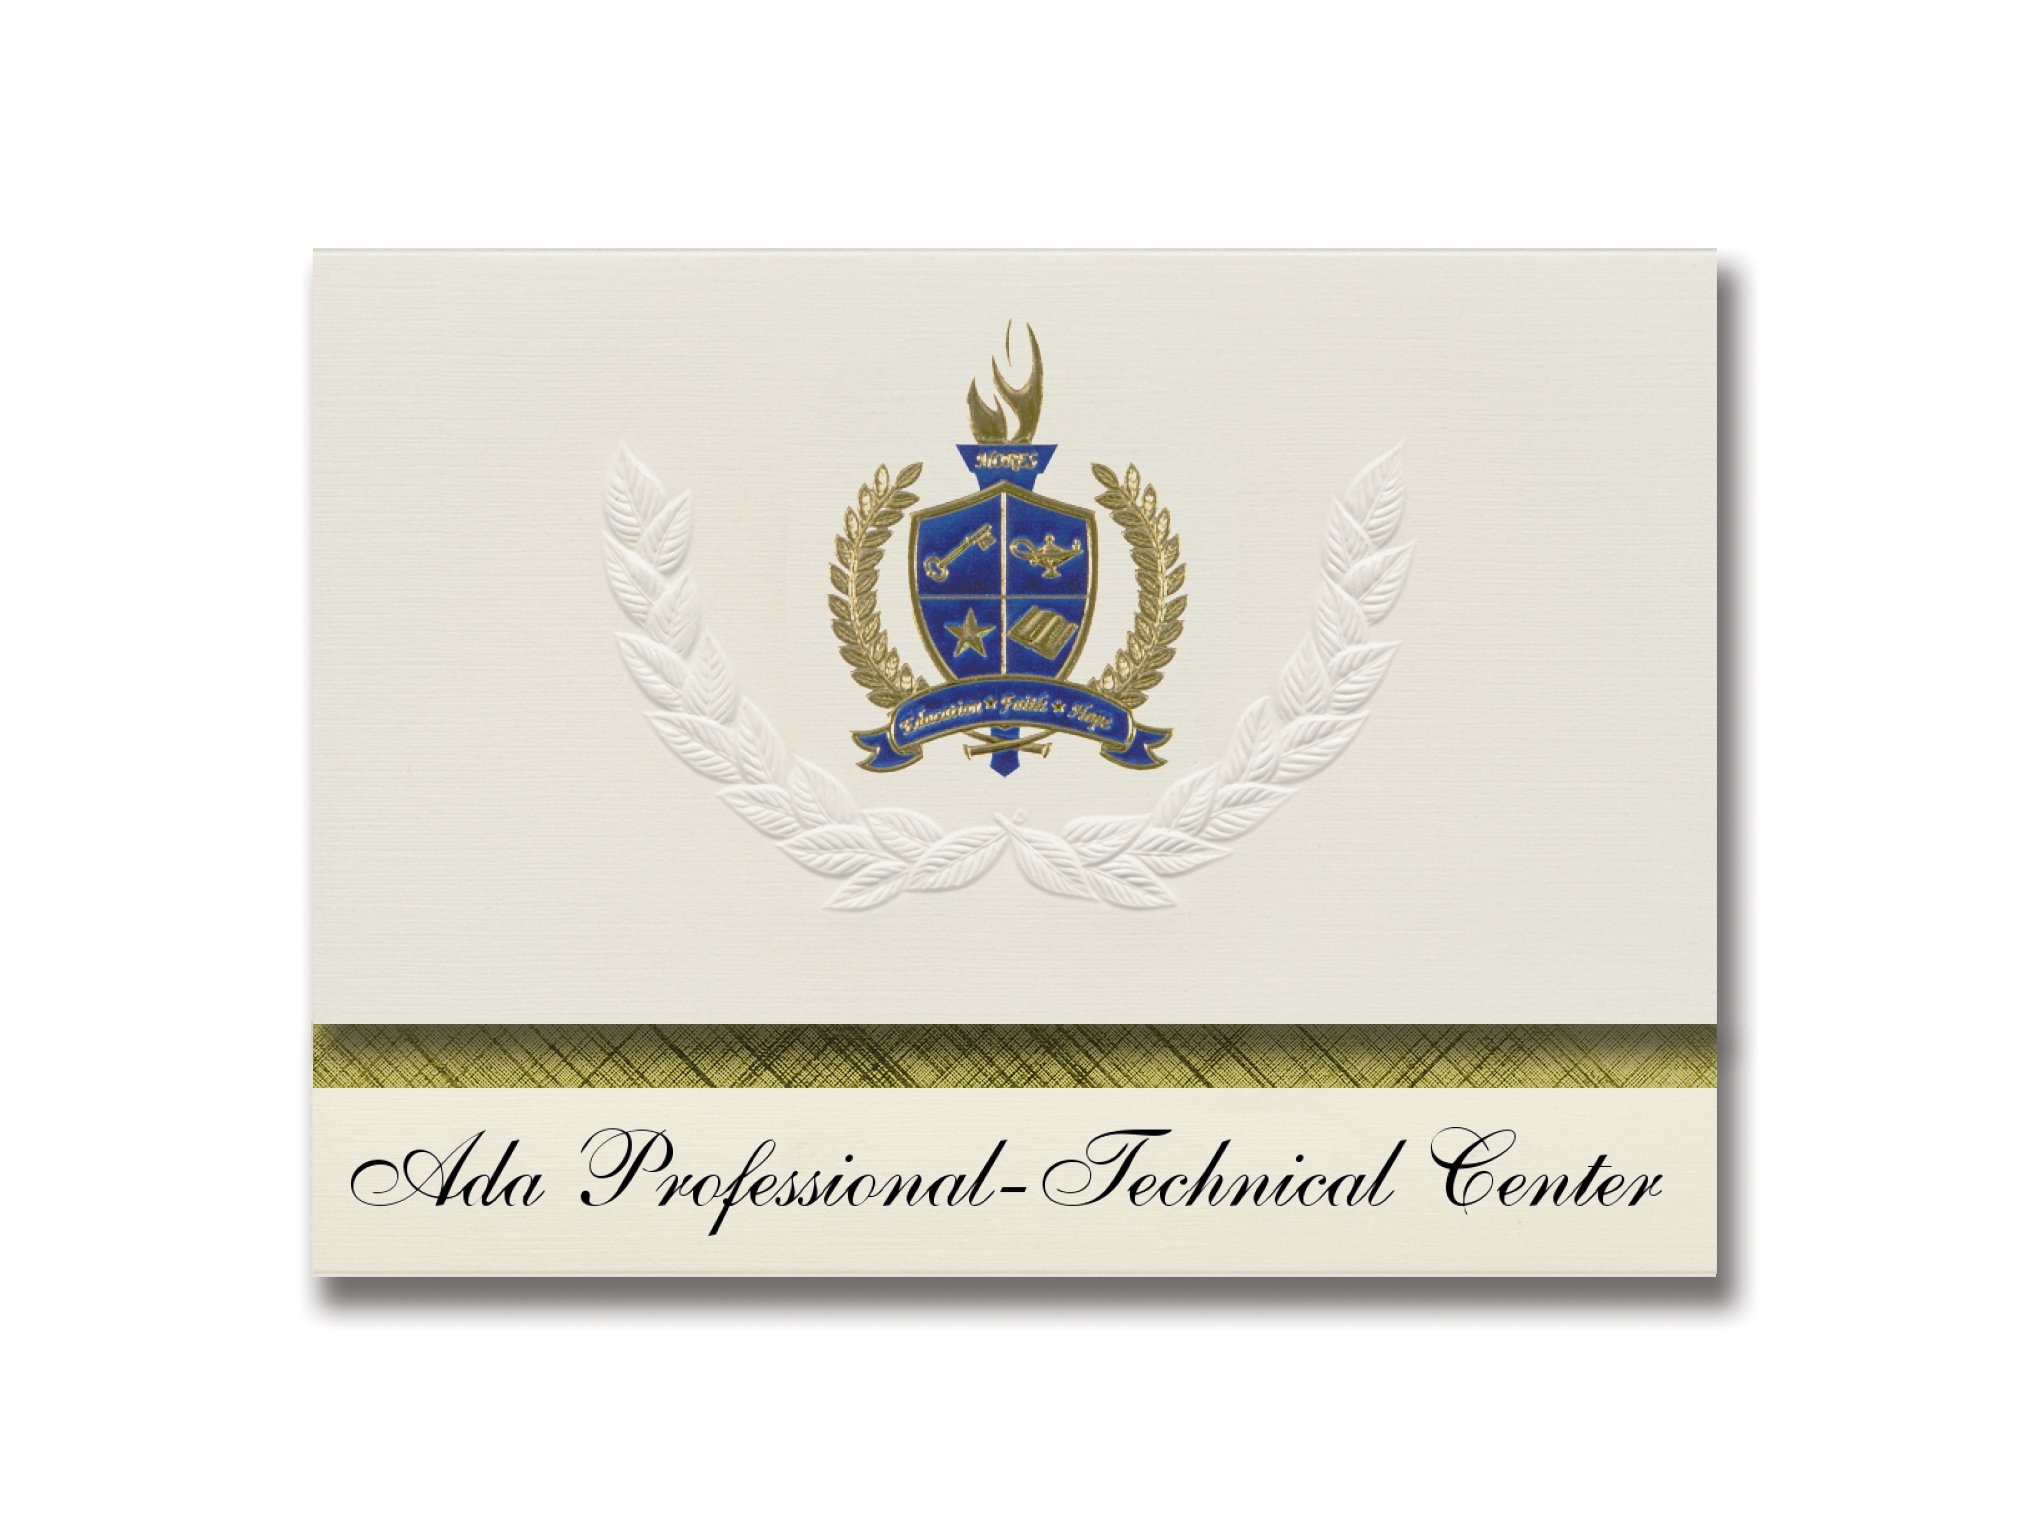 Signature Announcements Ada Elite-Technical Center (Meridian, ID) Graduation Announcements, Presidential style, Elite package of 25 with Gold & Blue Metallic Foil seal